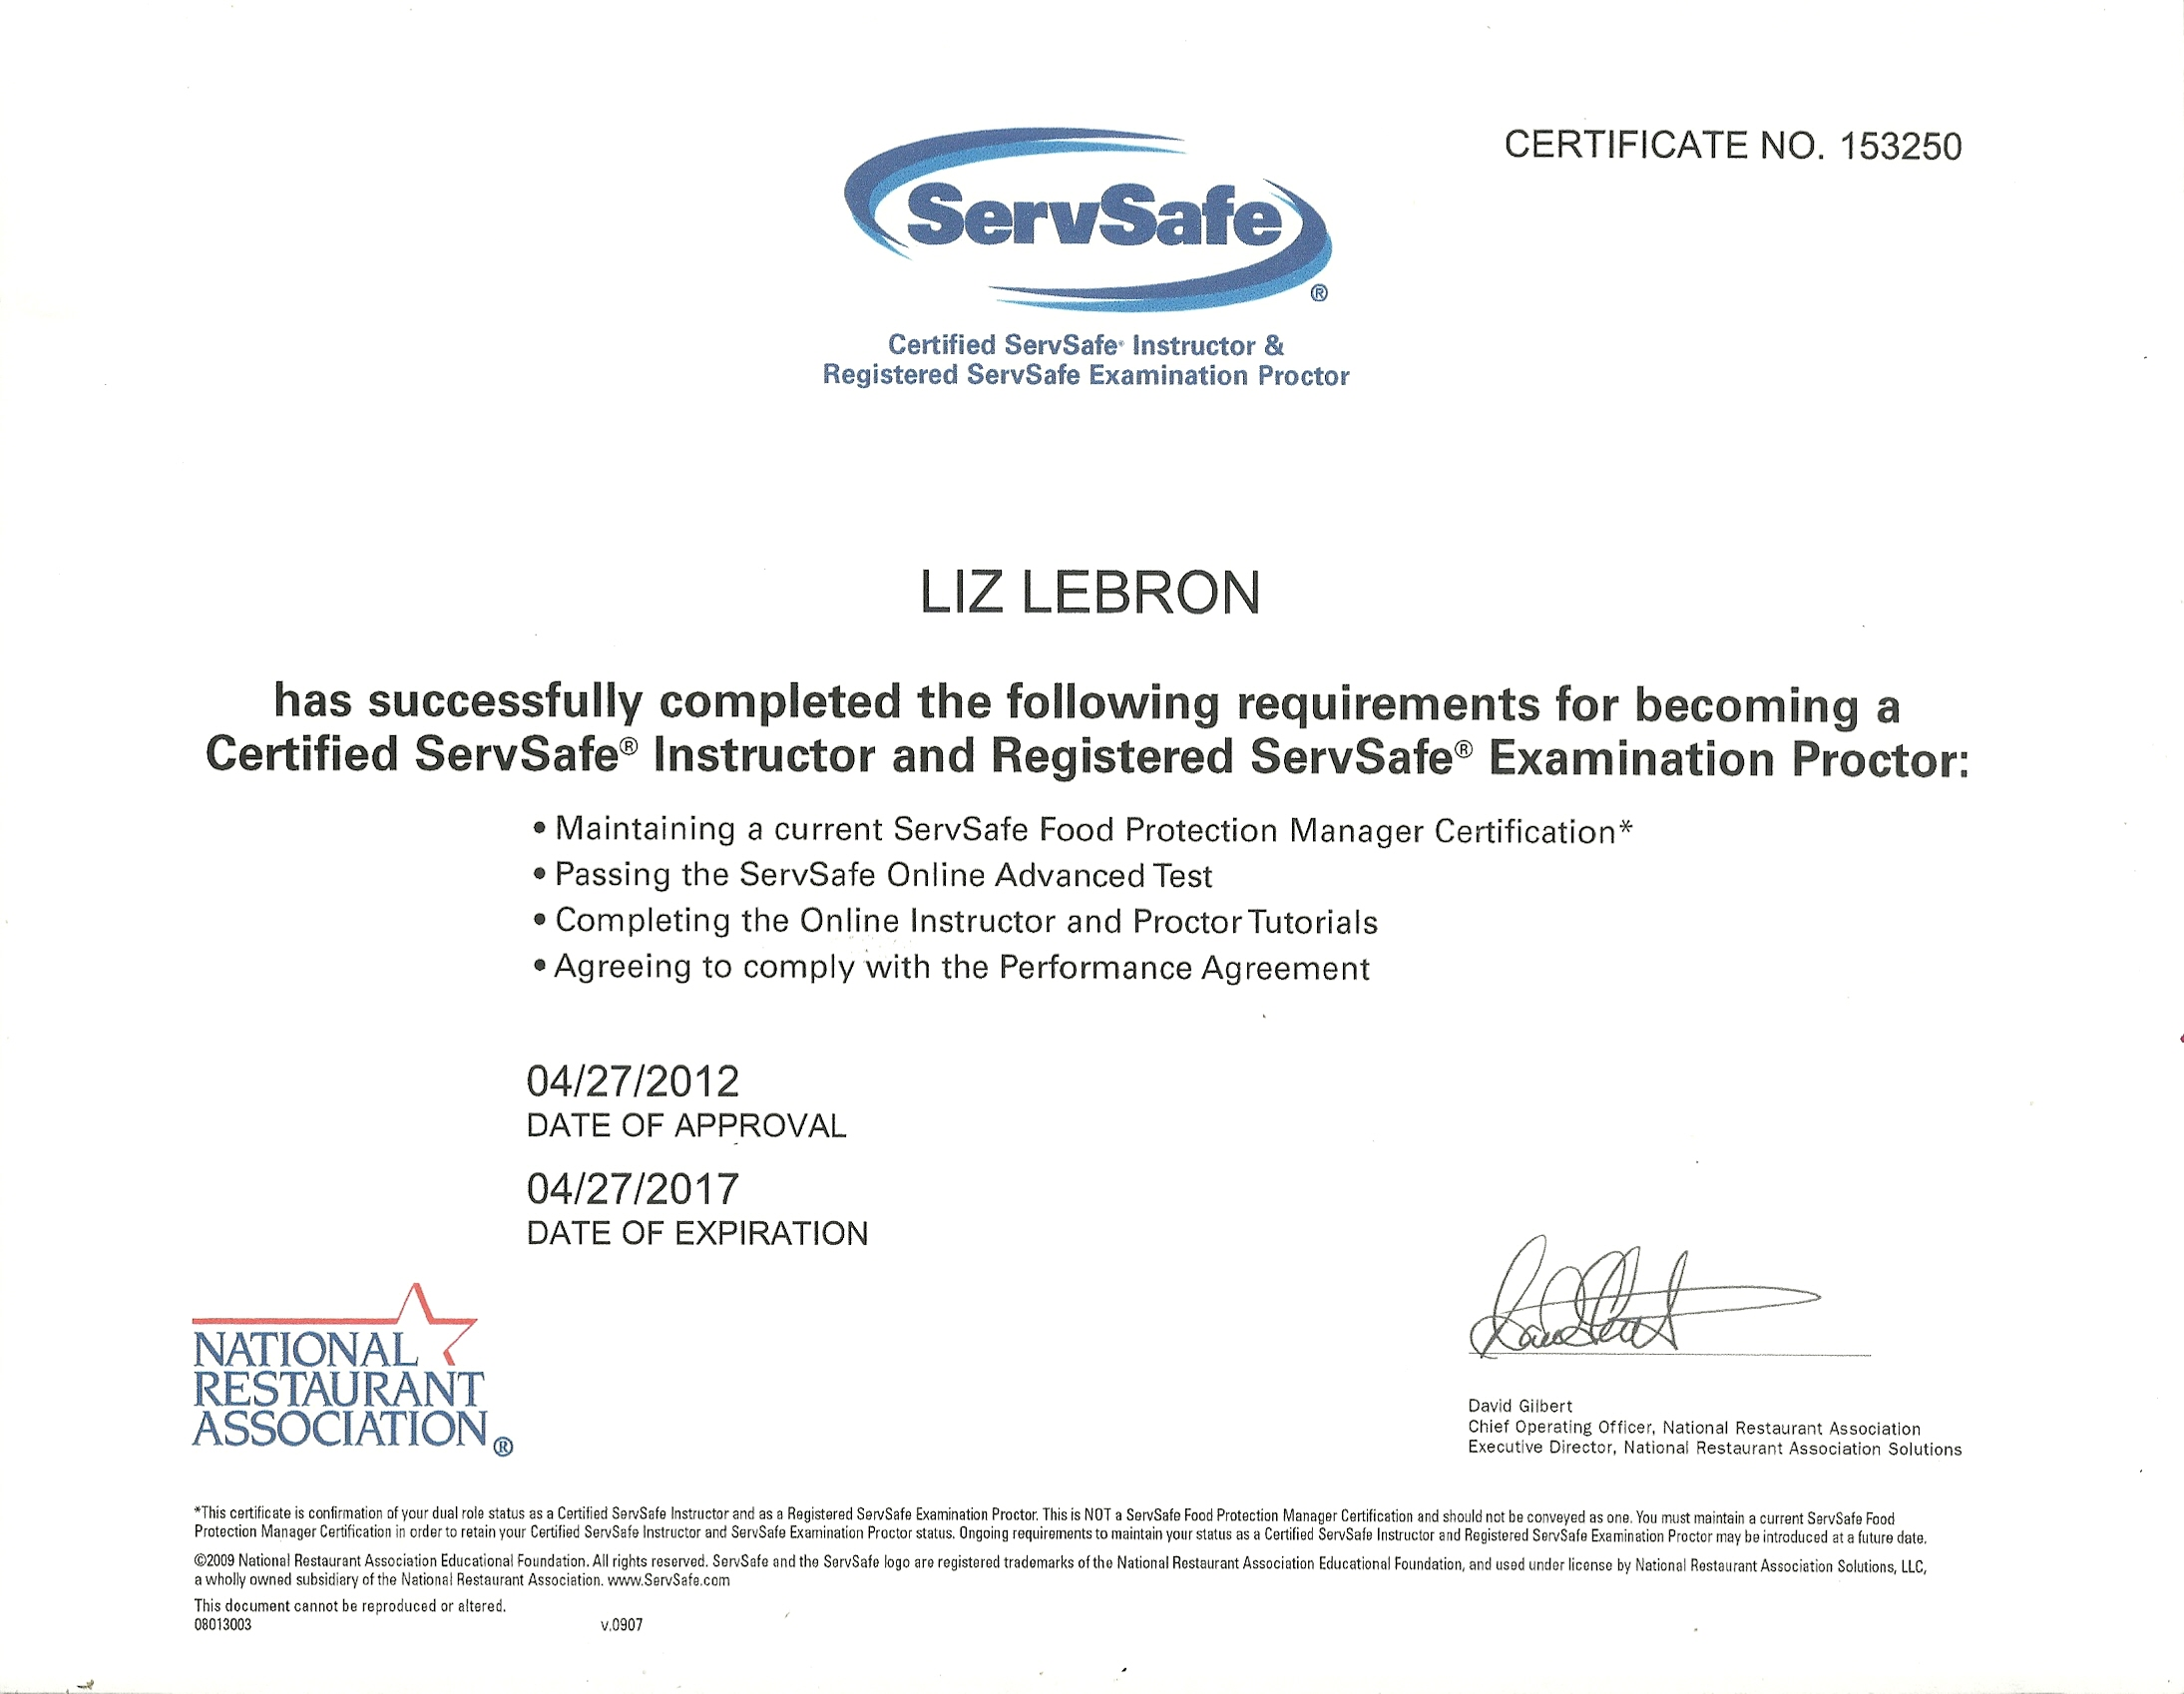 Beautiful photograph of servsafe certification online business credenciales cfsi xflitez Image collections